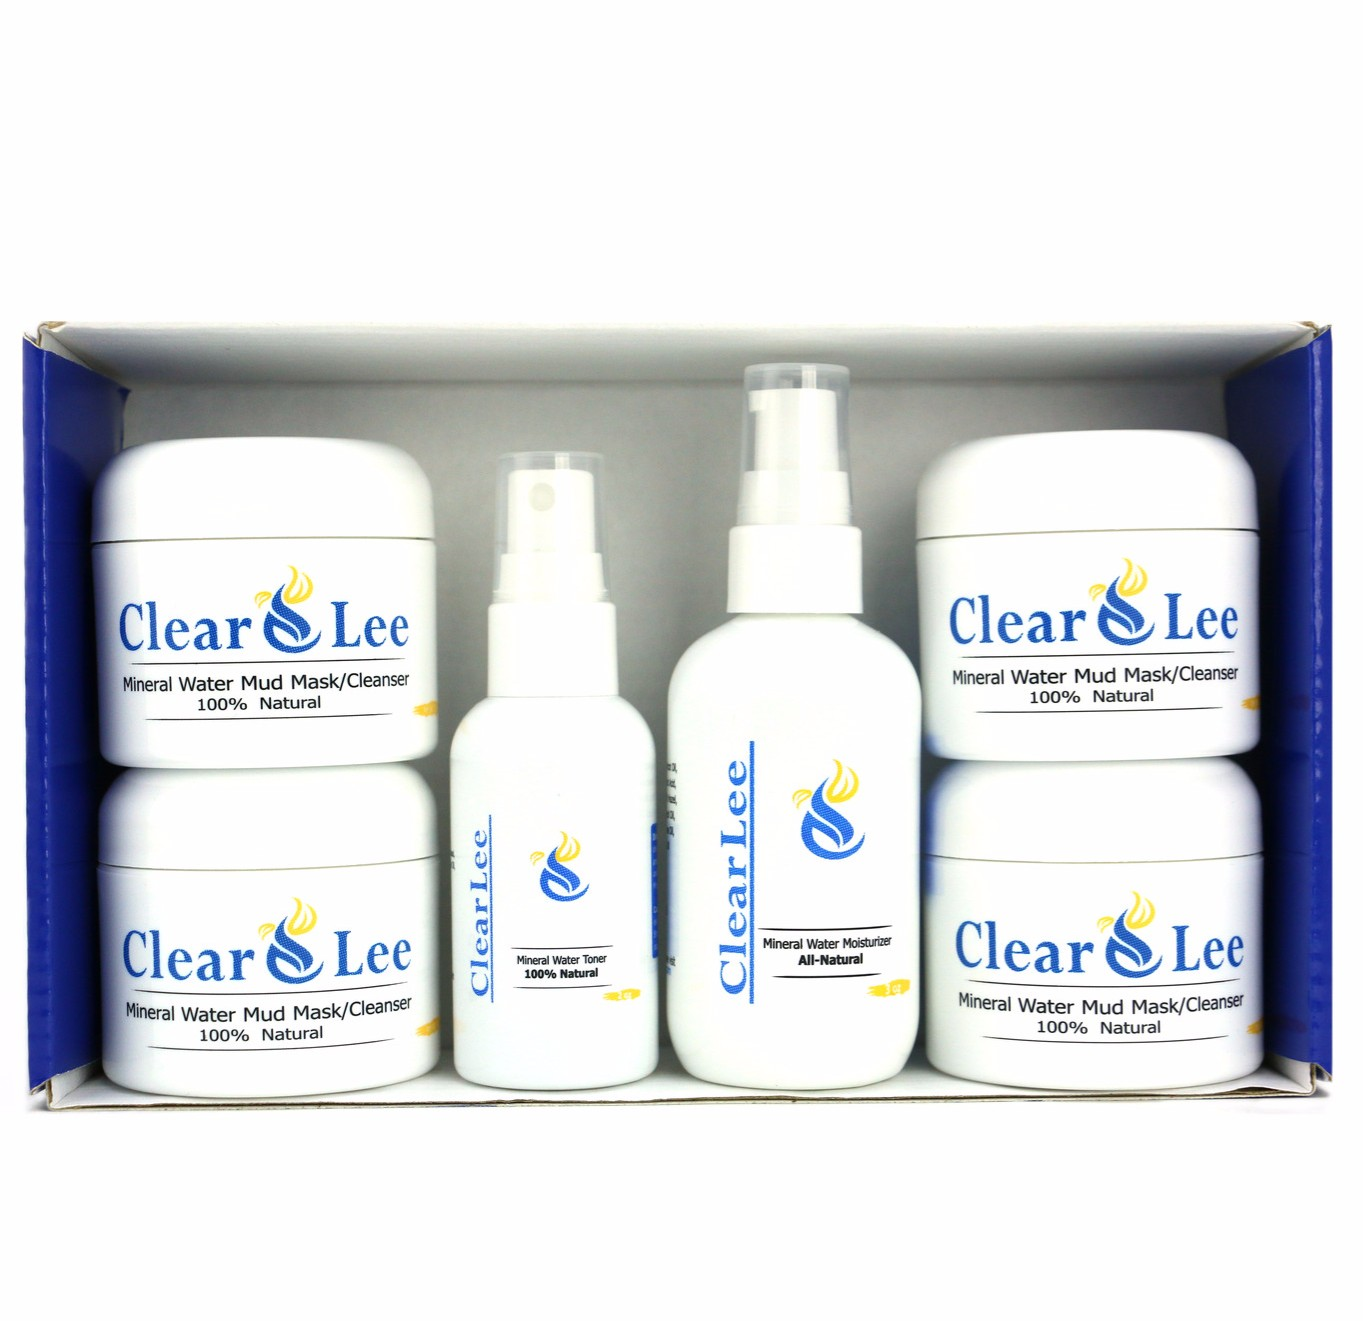 Clear Skin: ClearLee Mineral Water Cosmetics New Skin Care Line For You